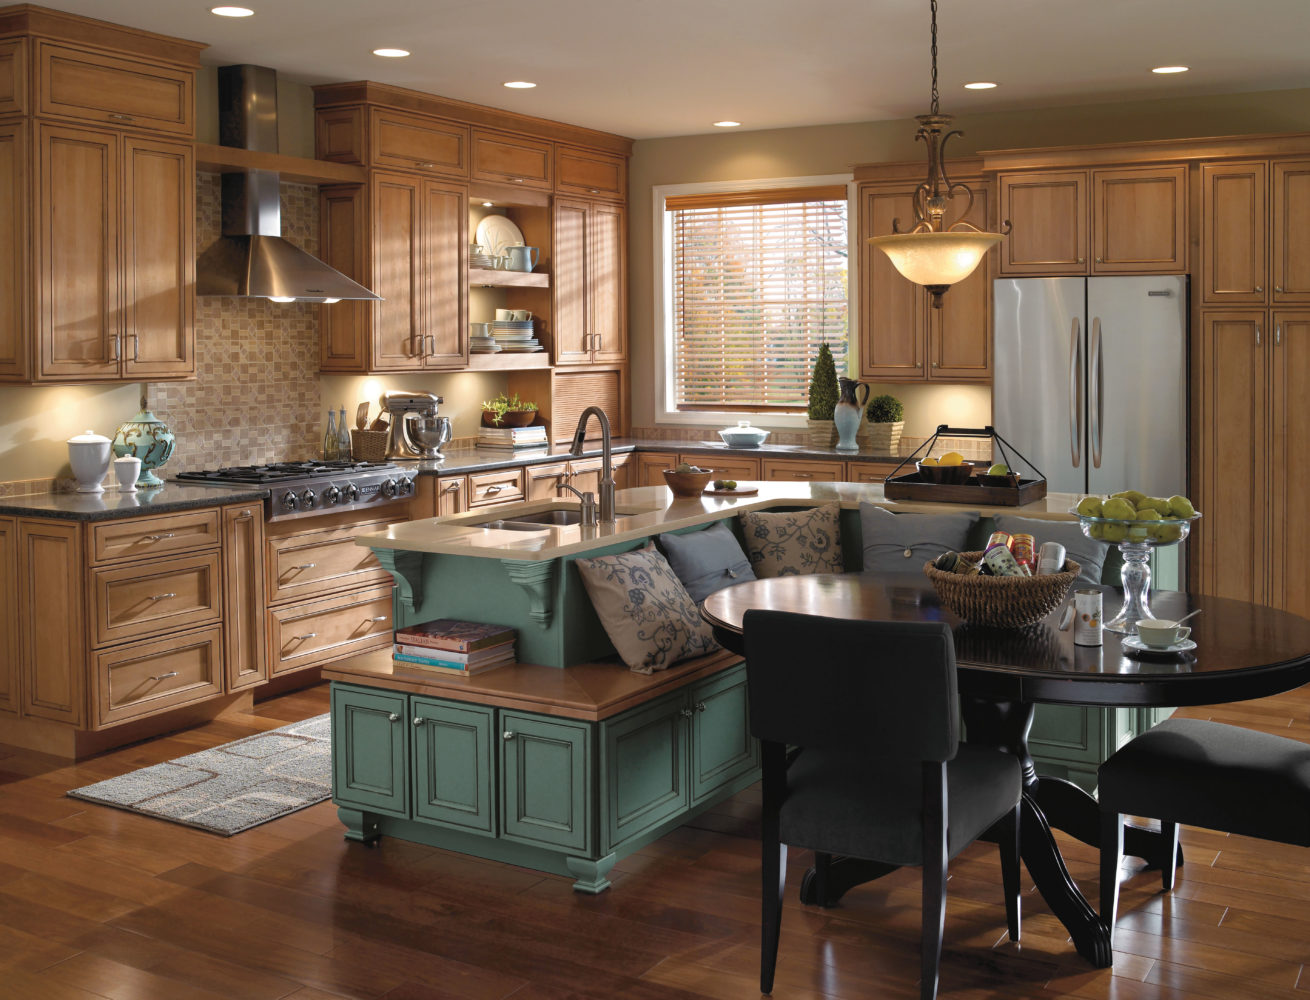 L-shaped kitchen island with bench seating.